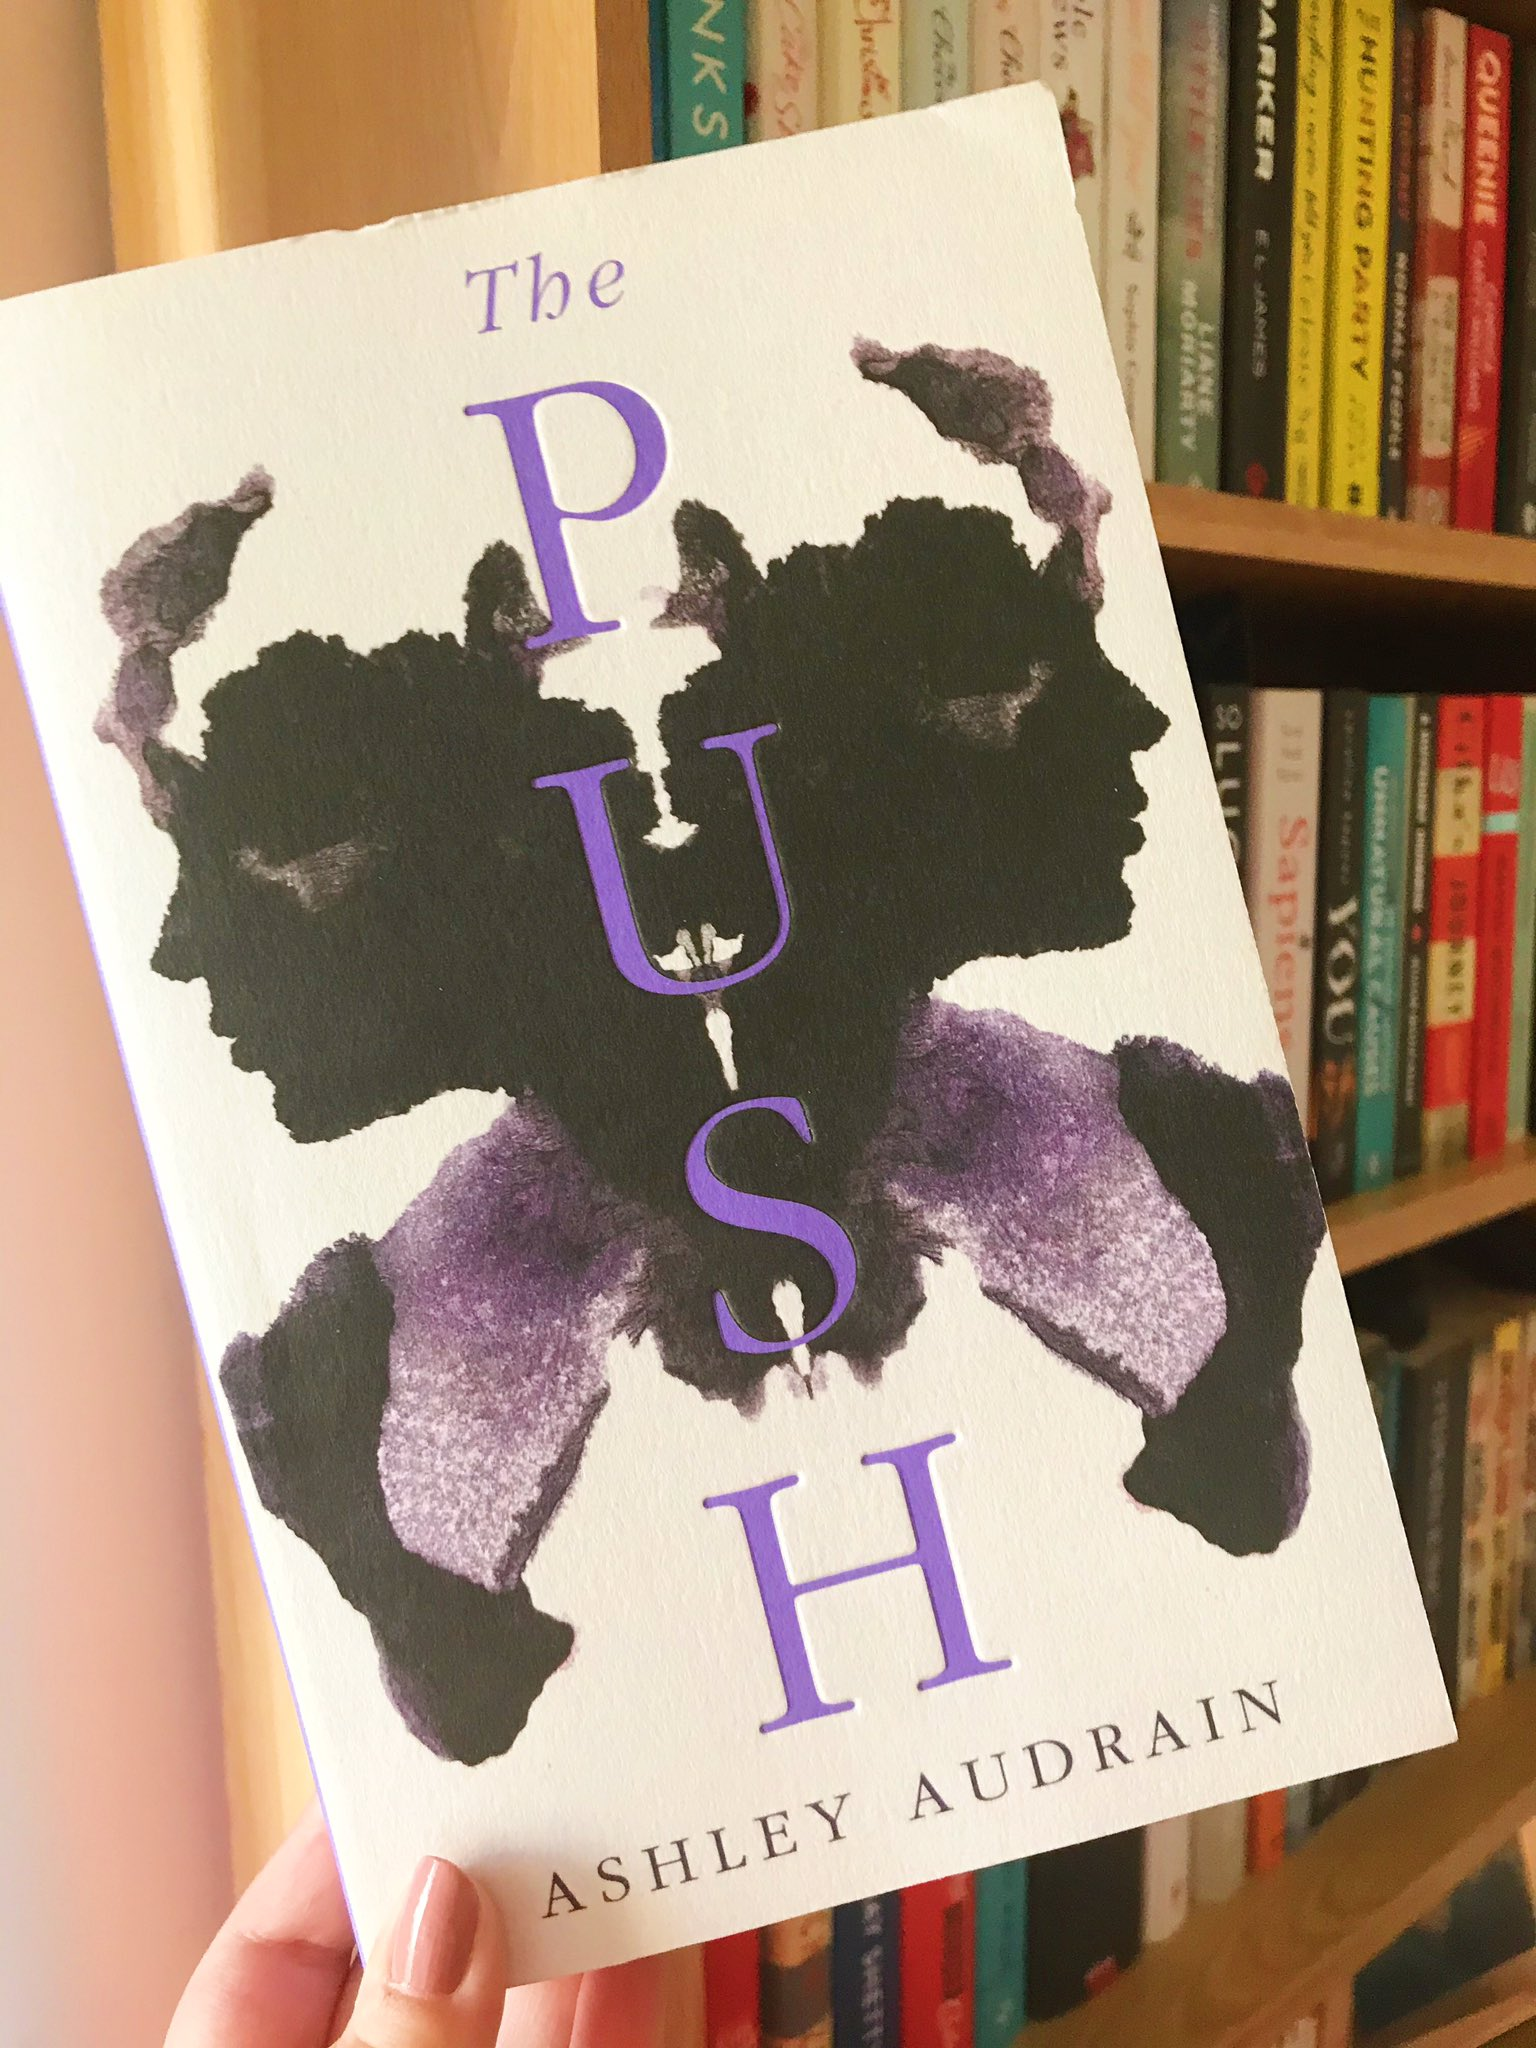 The Push by Ashley Audrain book held up in front of bookshelf